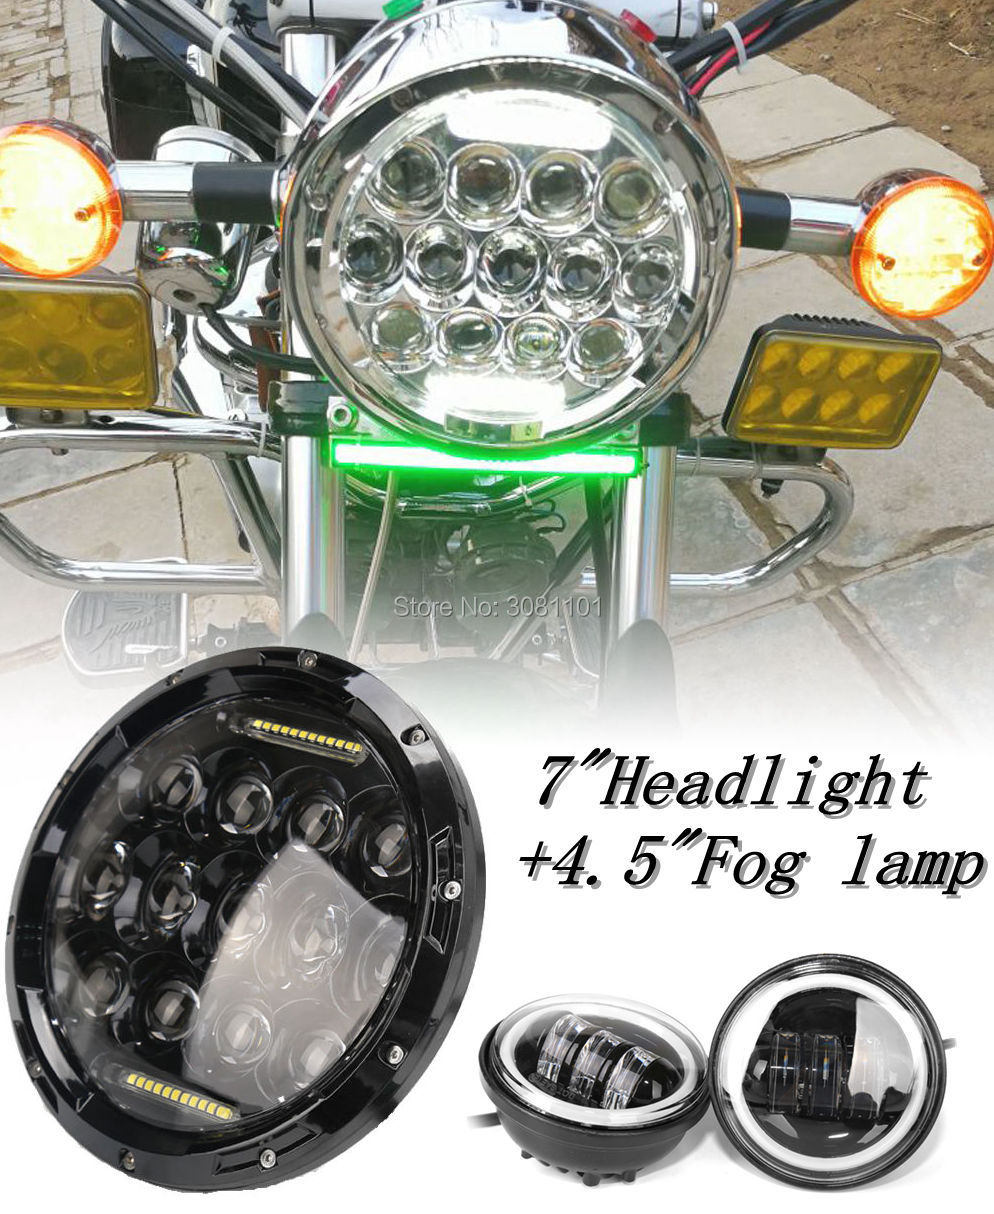 7 LED Headlight 78W High Beam with DRL +2 PCS 4.5 Fog lamp with white Angel Eyes for 2003 Harley-Davidson Heritage Springer 2pcs 2017 new design 7 inch 40w motorcycle led auto angel eyes led headlight bulb with high quality